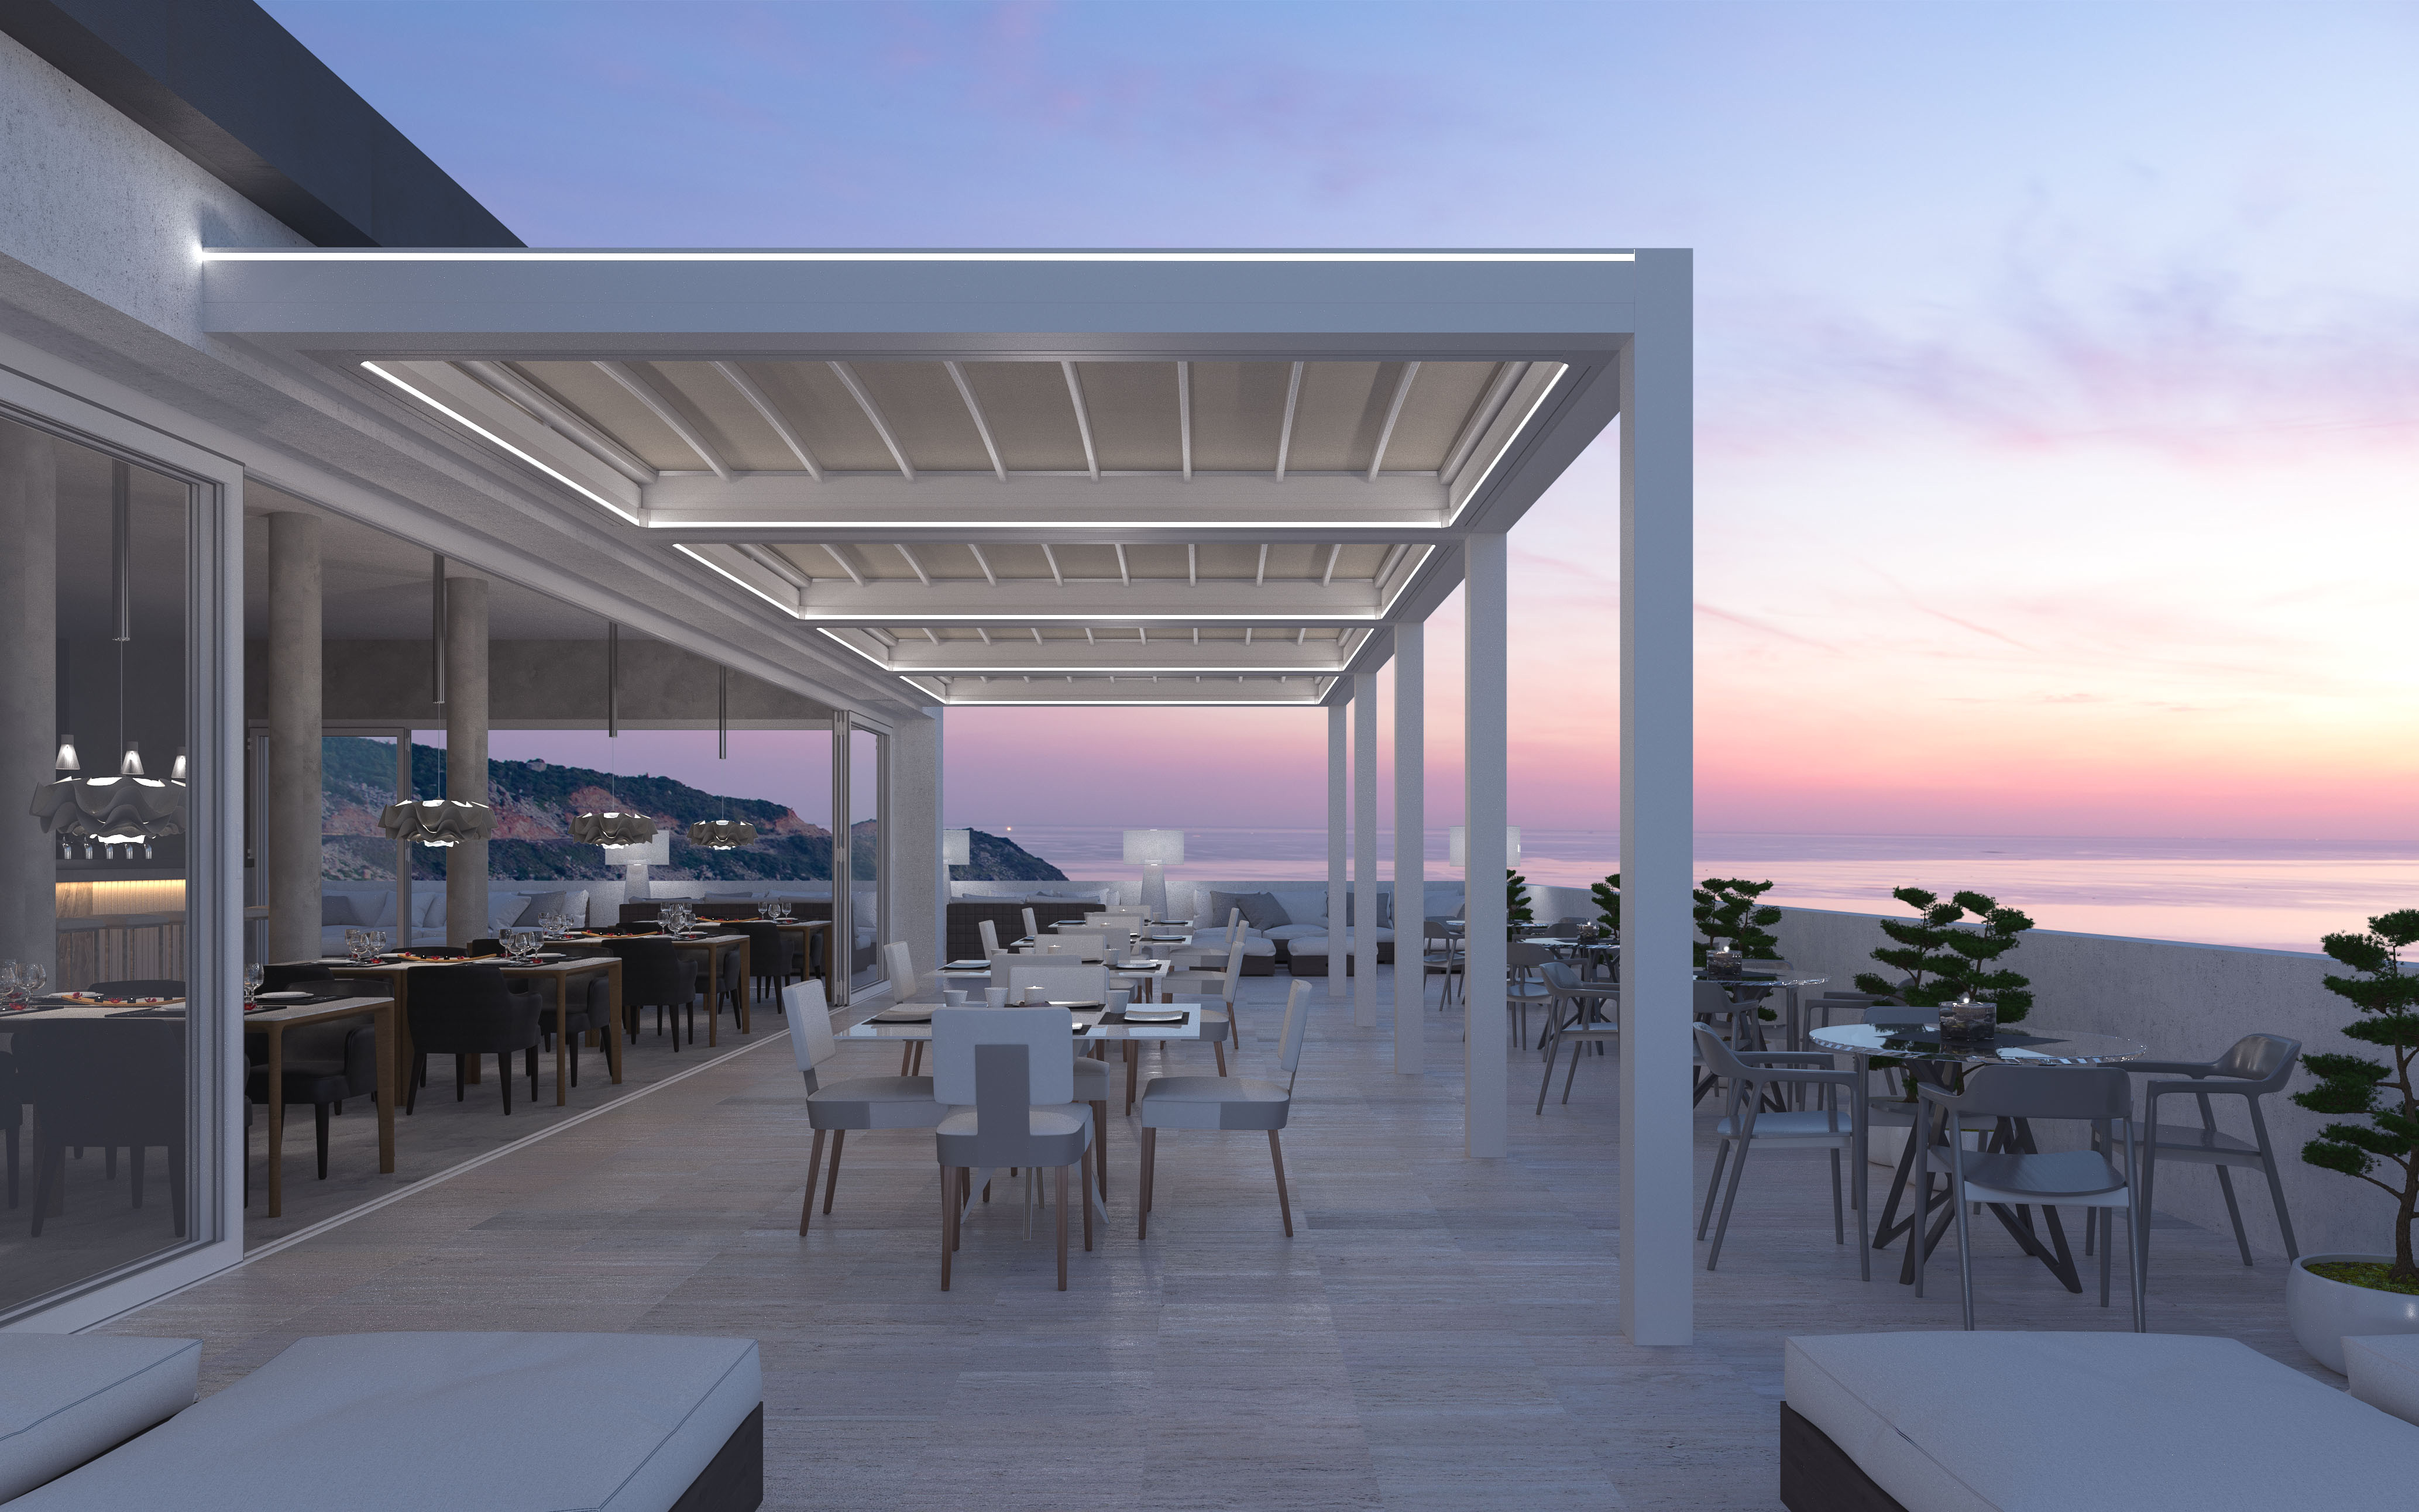 Perseus - Restaurant in Greece